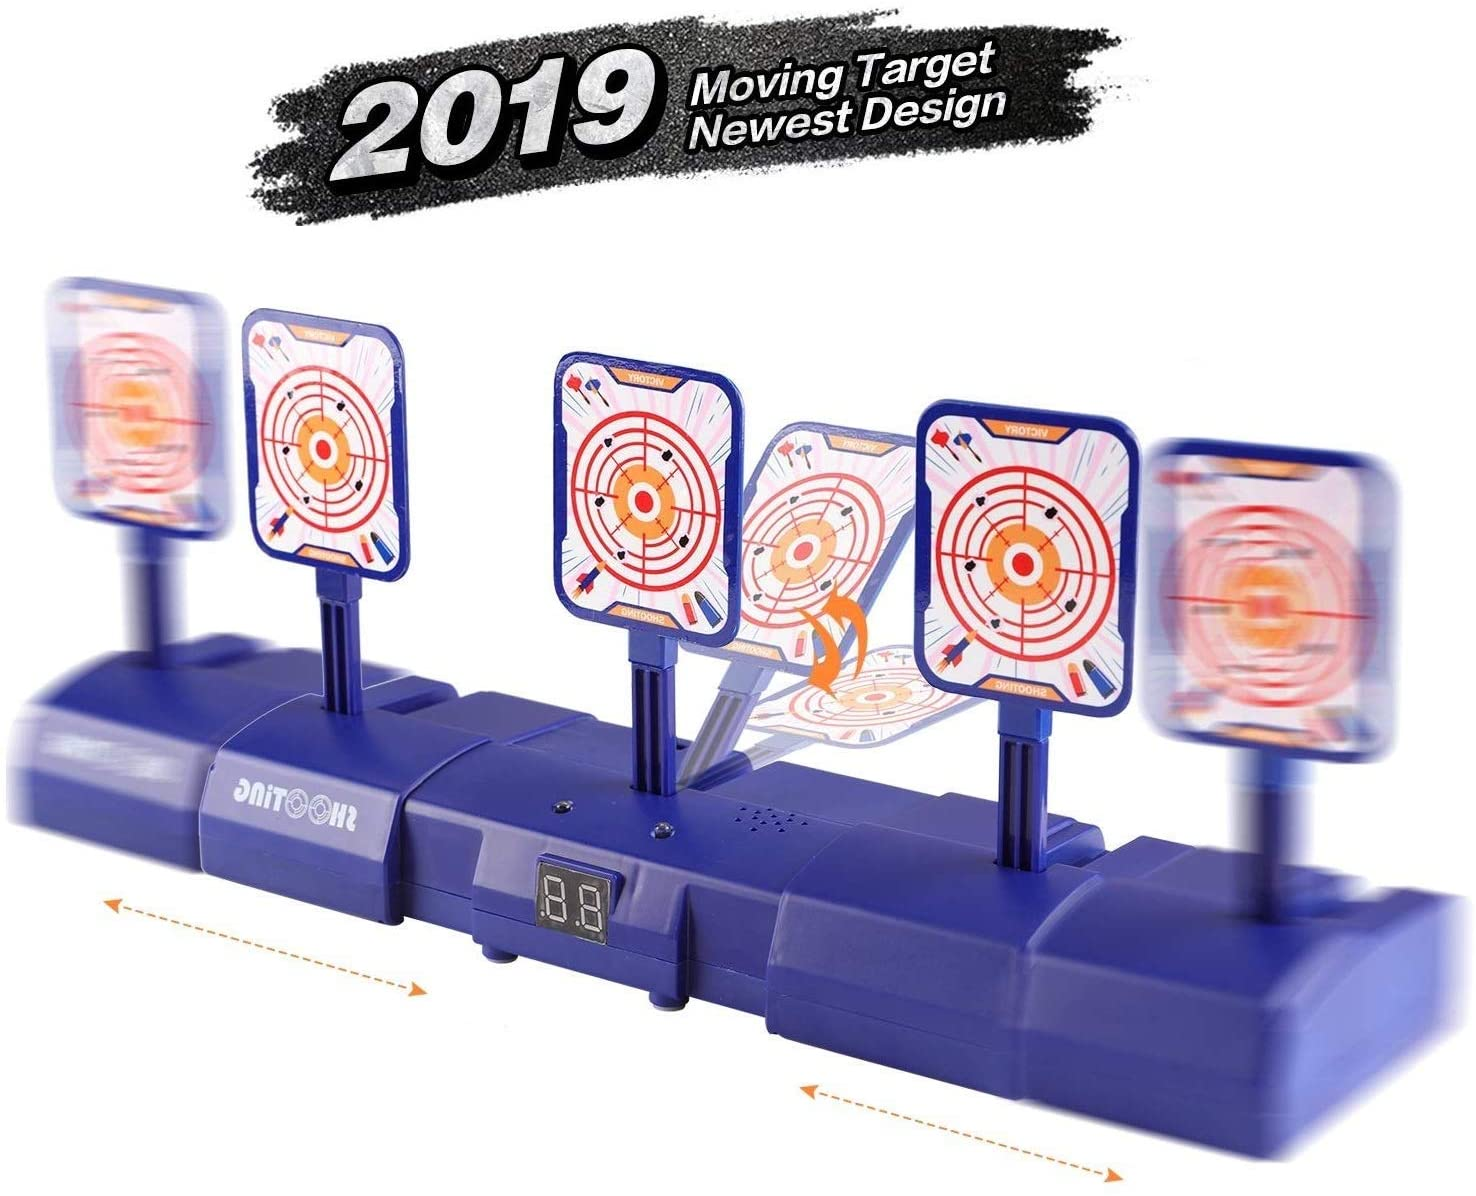 Electronic Shooting Targets for Nerf Guns Blaster Digital Scoring Auto Reset, Ideal Gift Toy for Boys and Girls